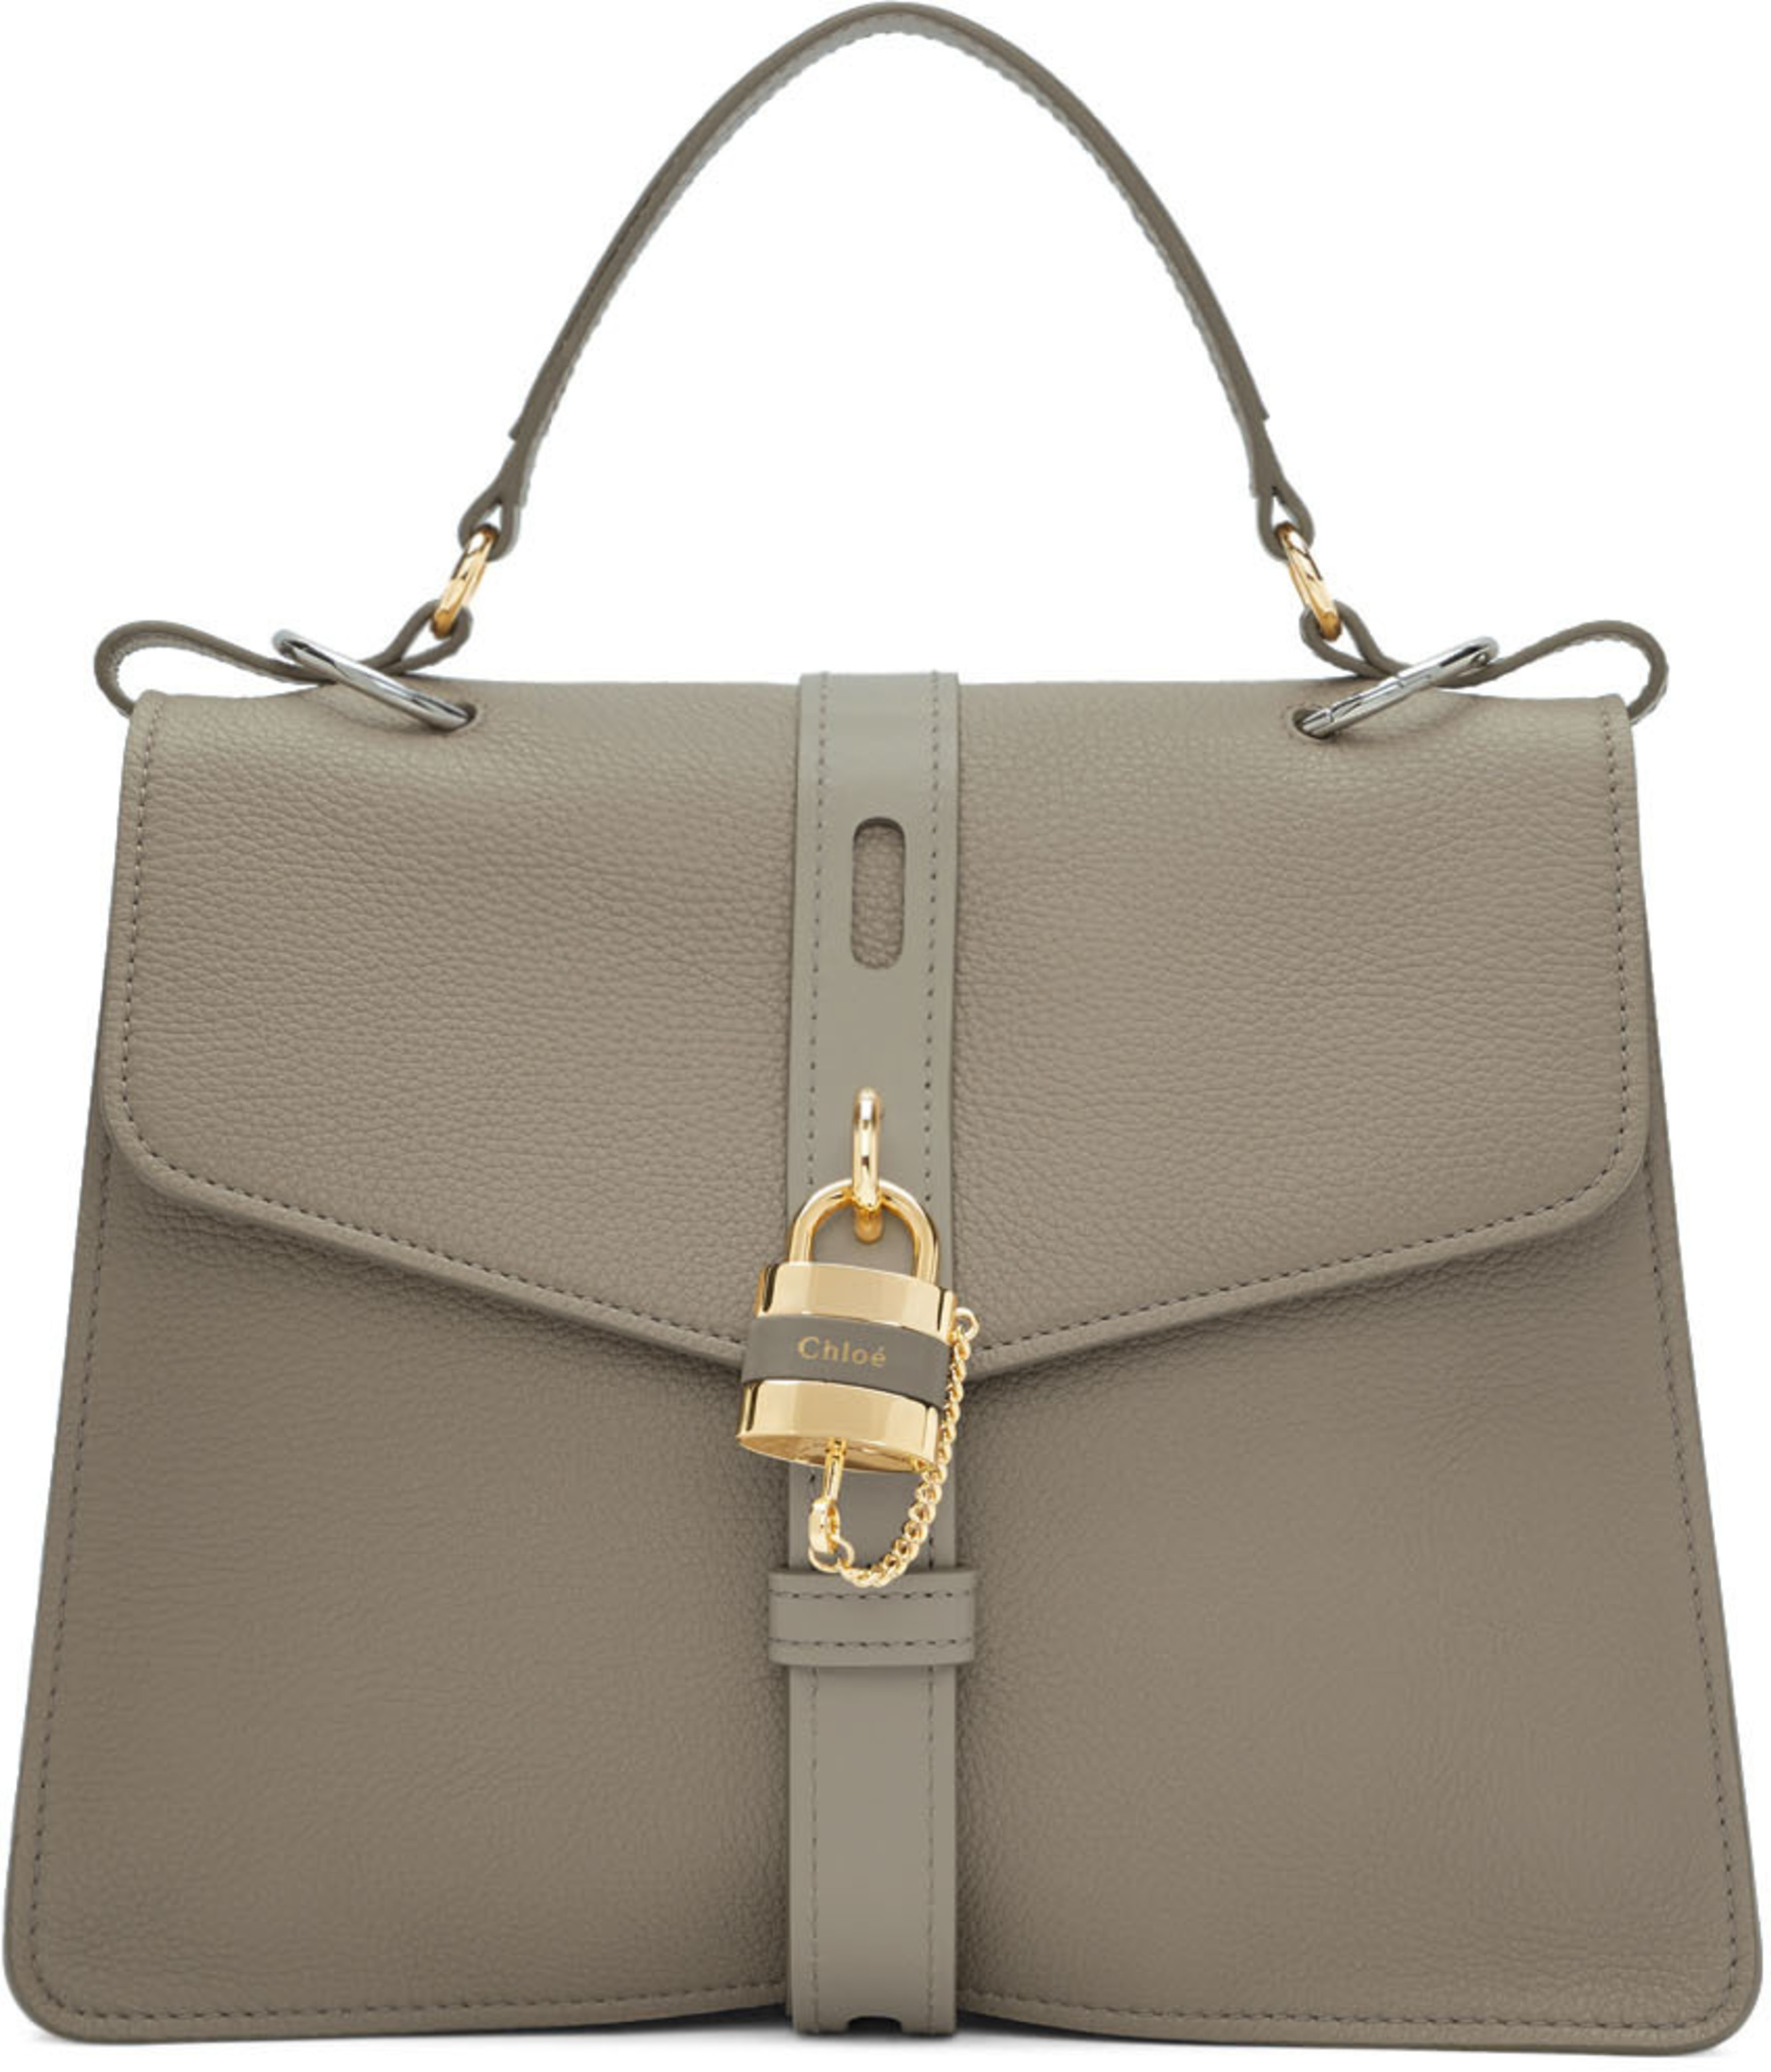 c0e374be4d Sac beige Aby